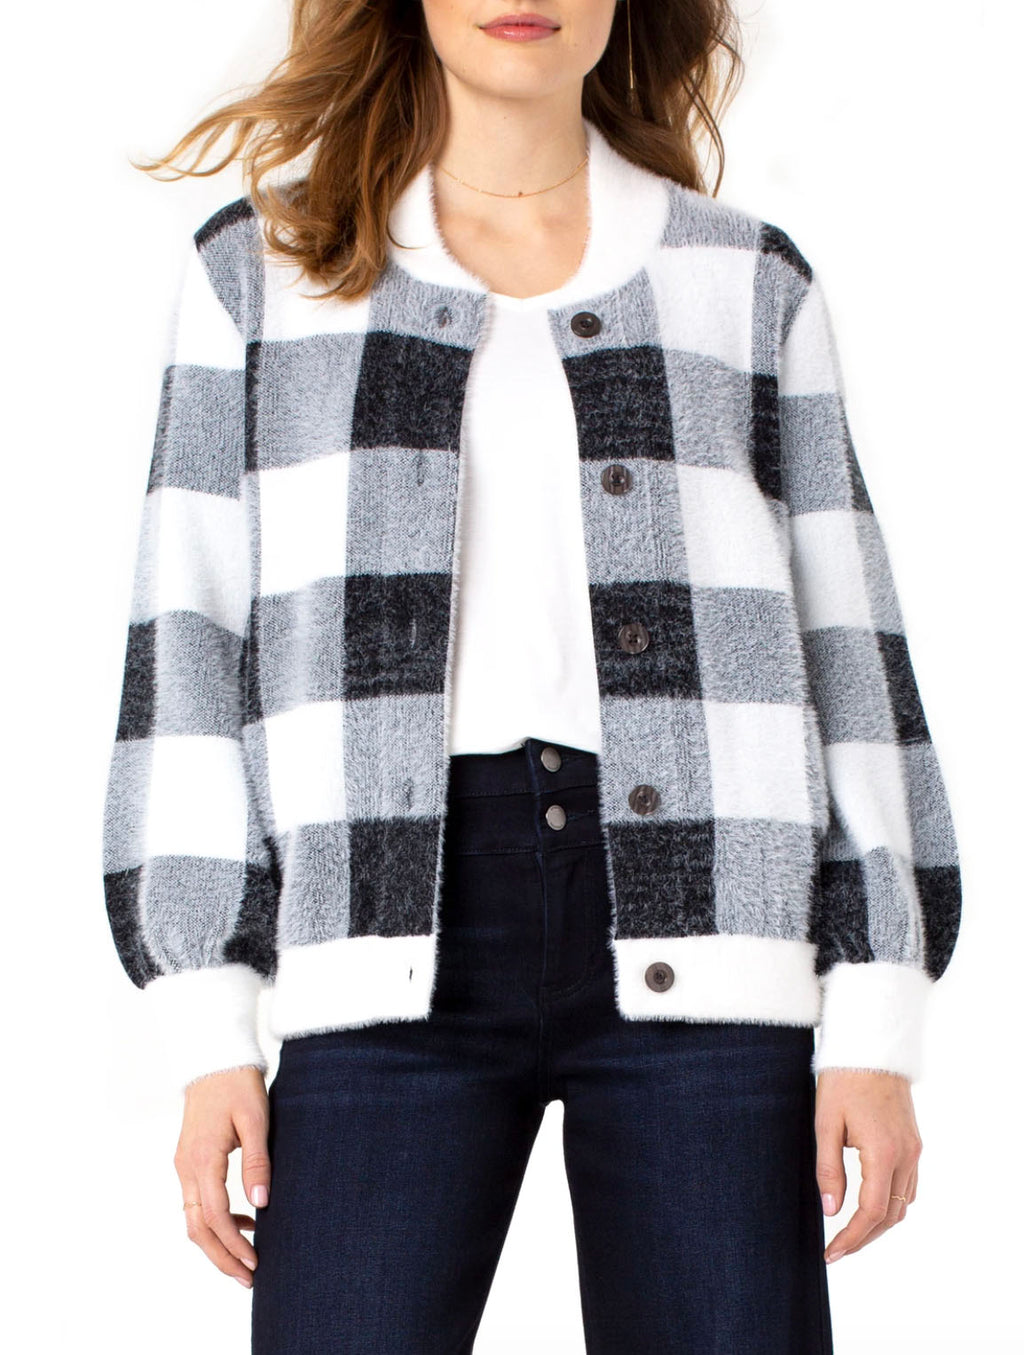 Liverpool Sweater Bomber in Black/White Check